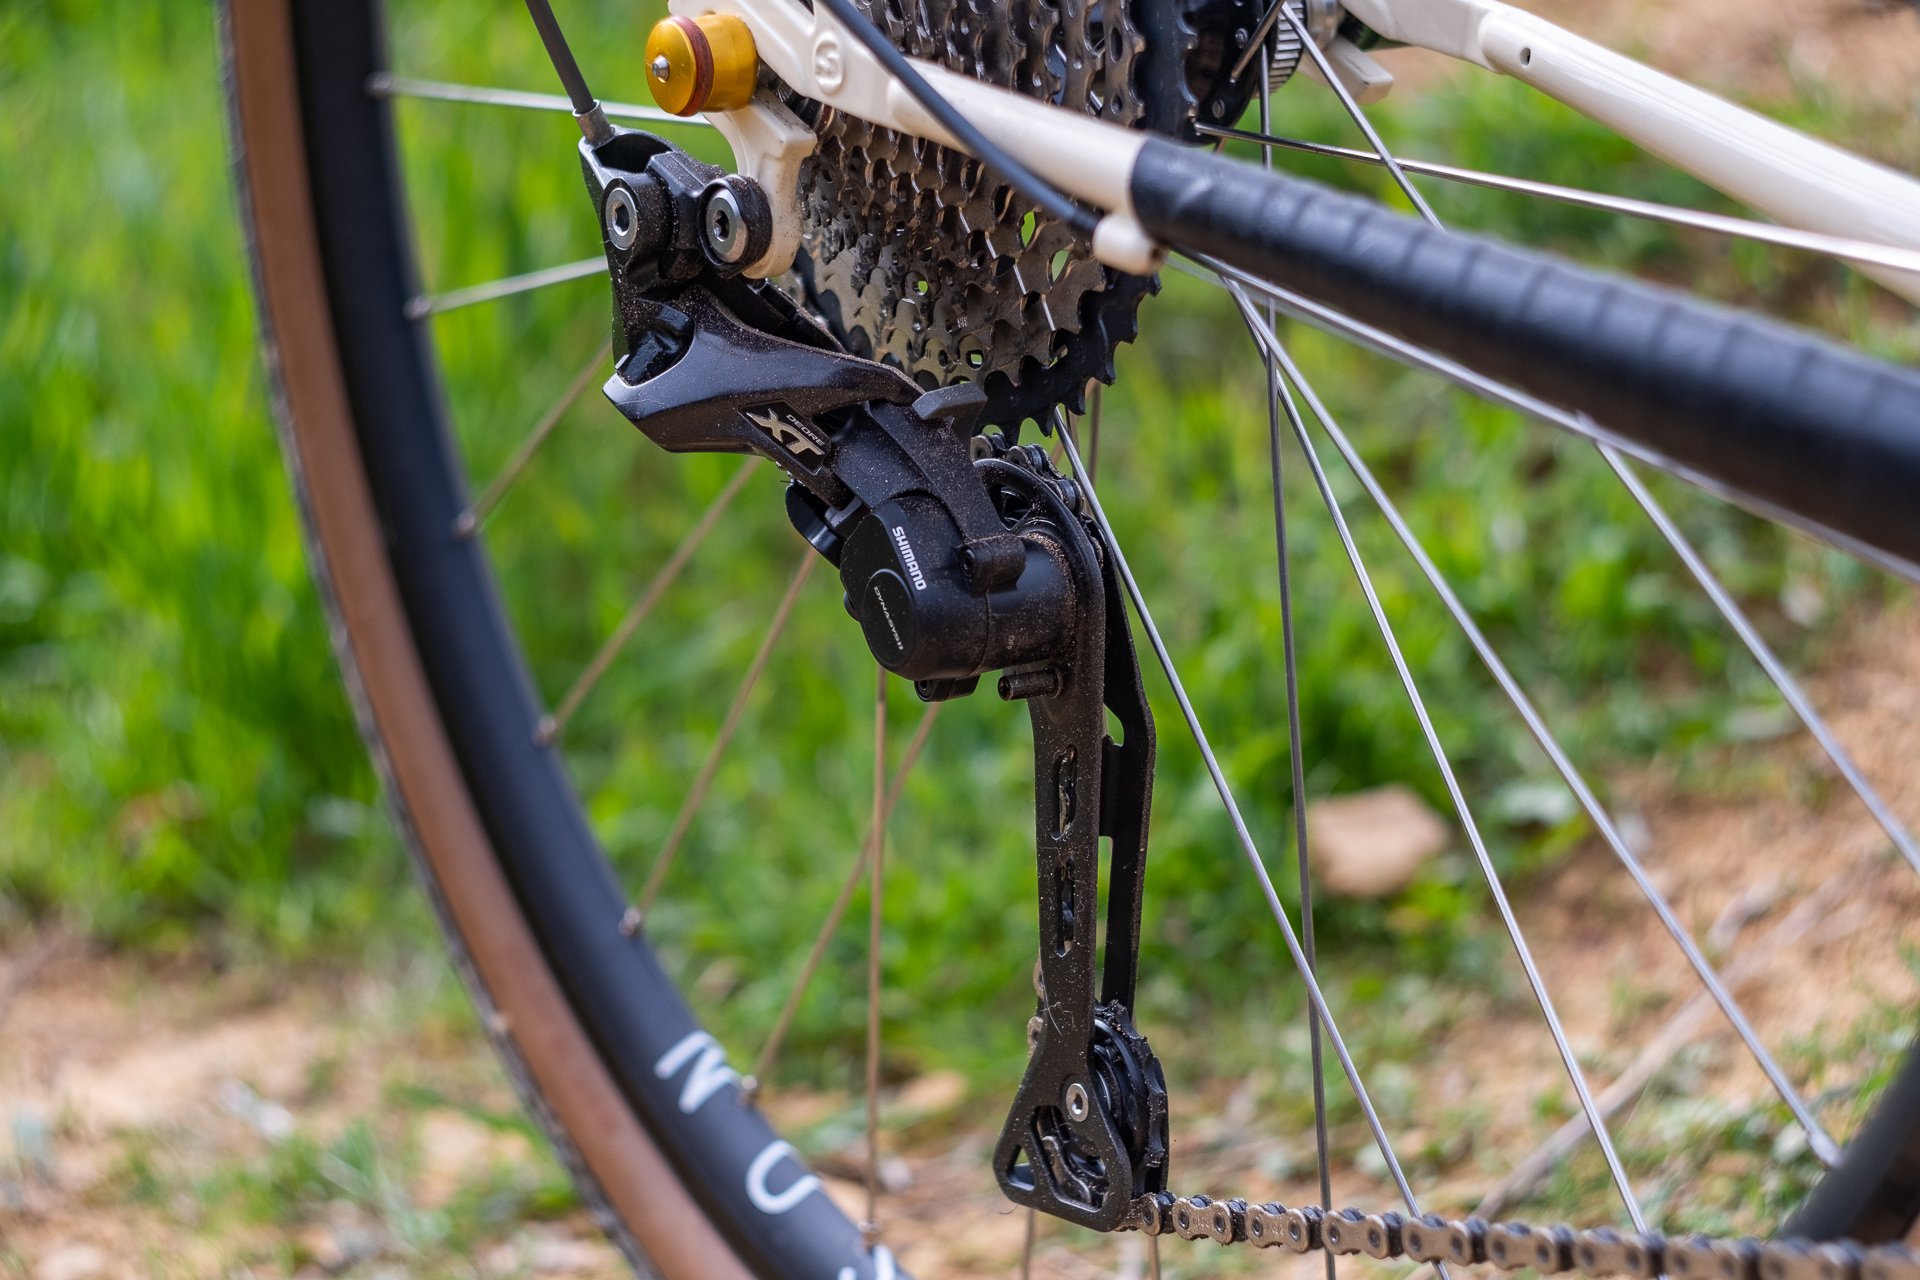 Surly Travelers Gravelers Check Shimano XT derailleur detail.